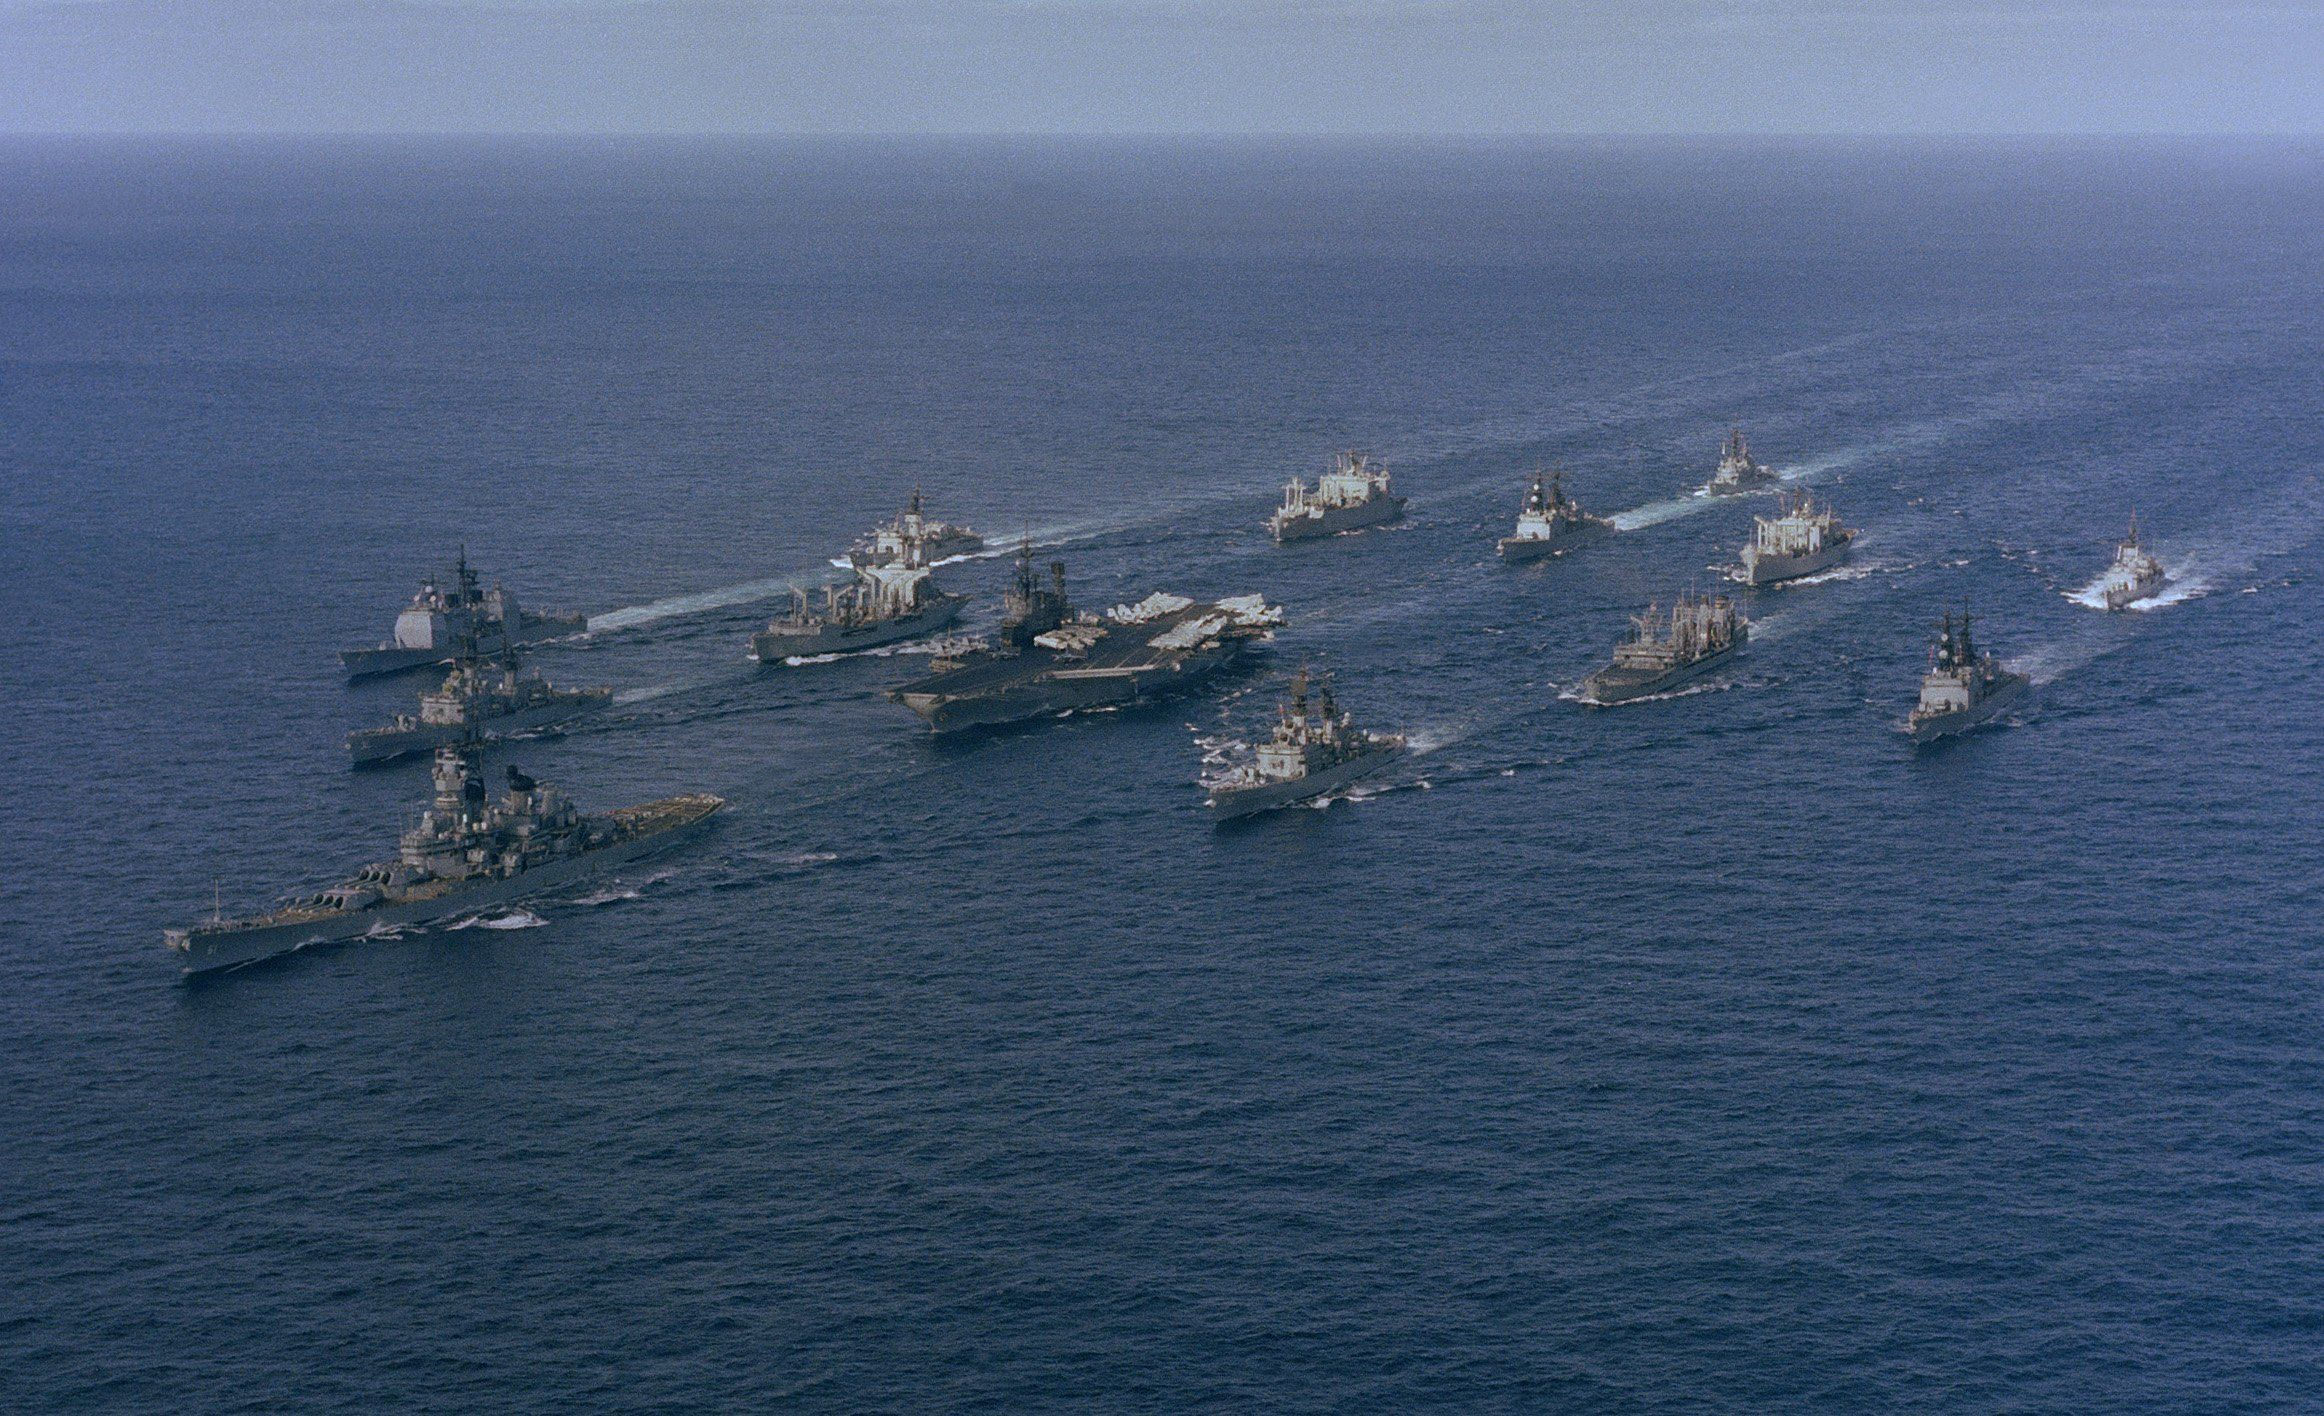 Battle_Group_Alpha_(Midway,_Iowa)_underway,_1987.jpg